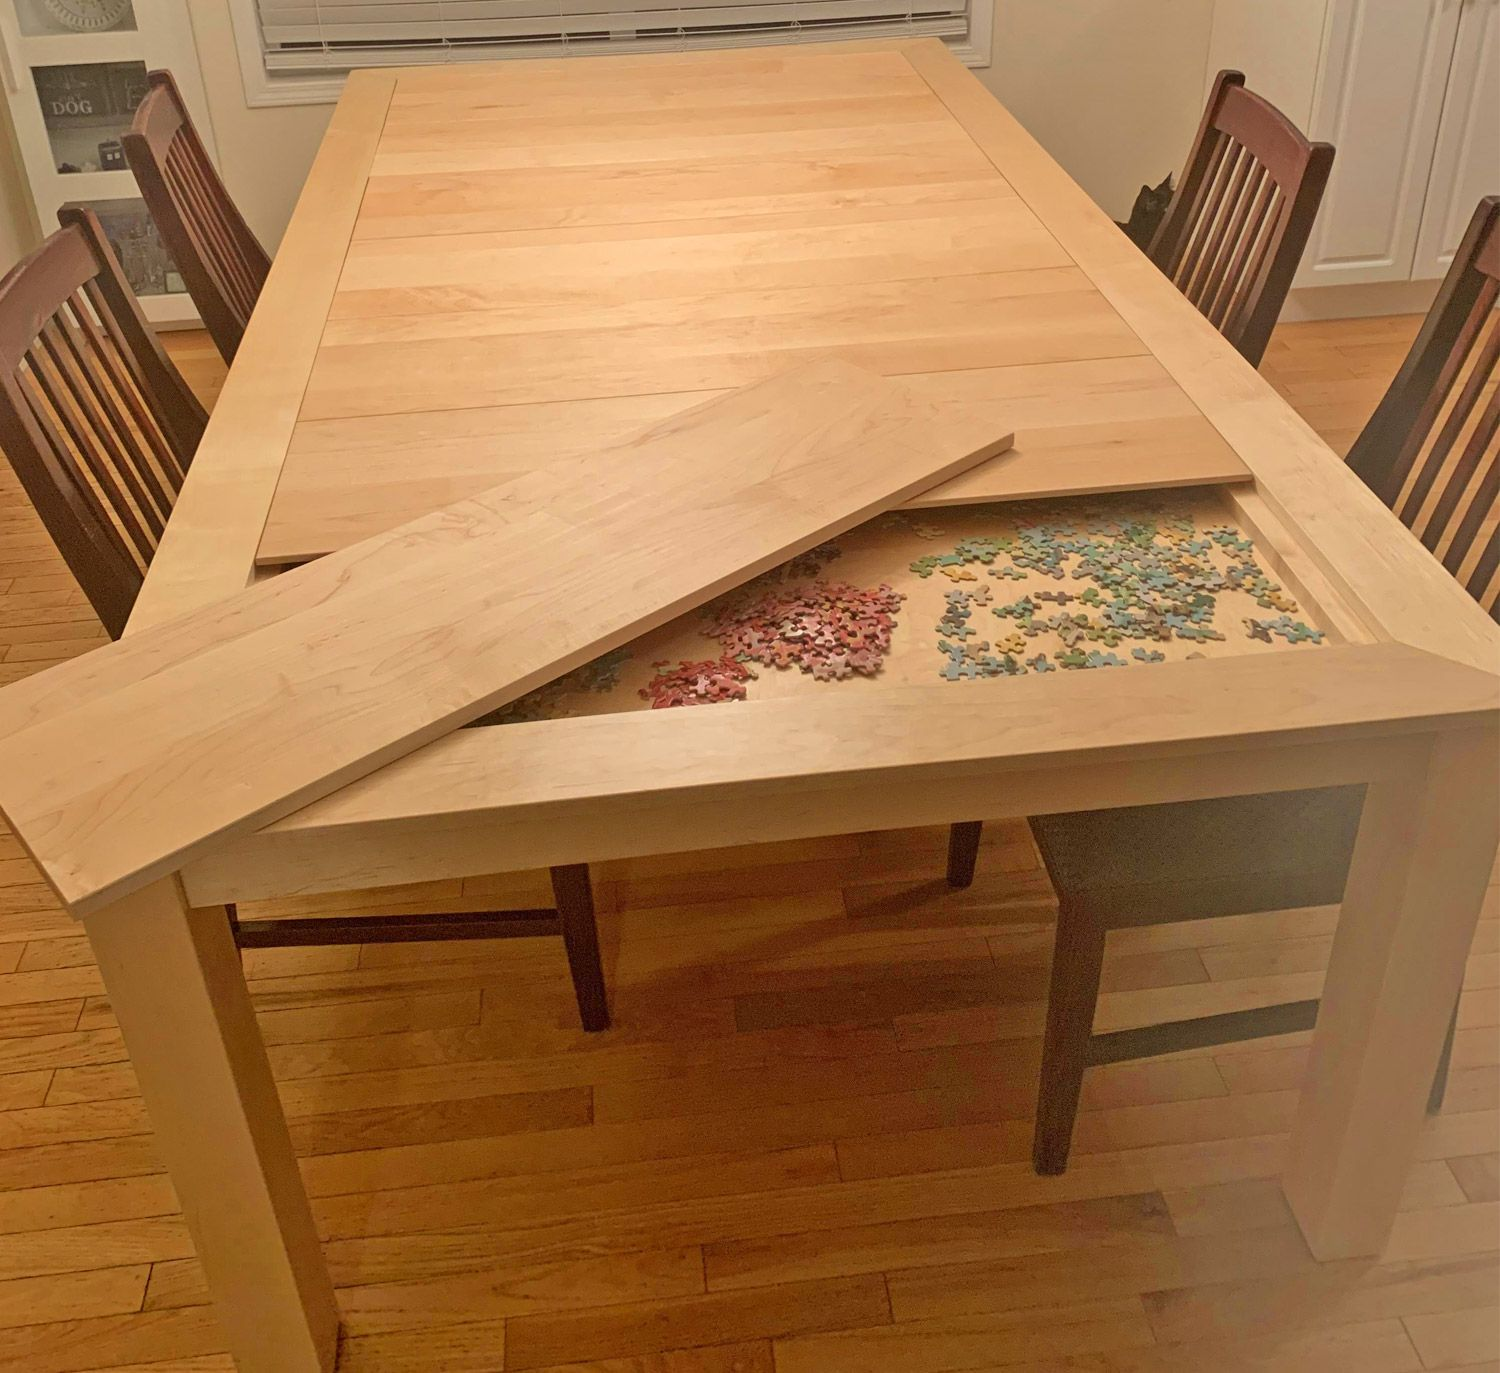 This Amazing Dining Table Has A Hidden Game Puzzle Compartment Under The Surface In 2020 Dining Table Furniture Fix Table